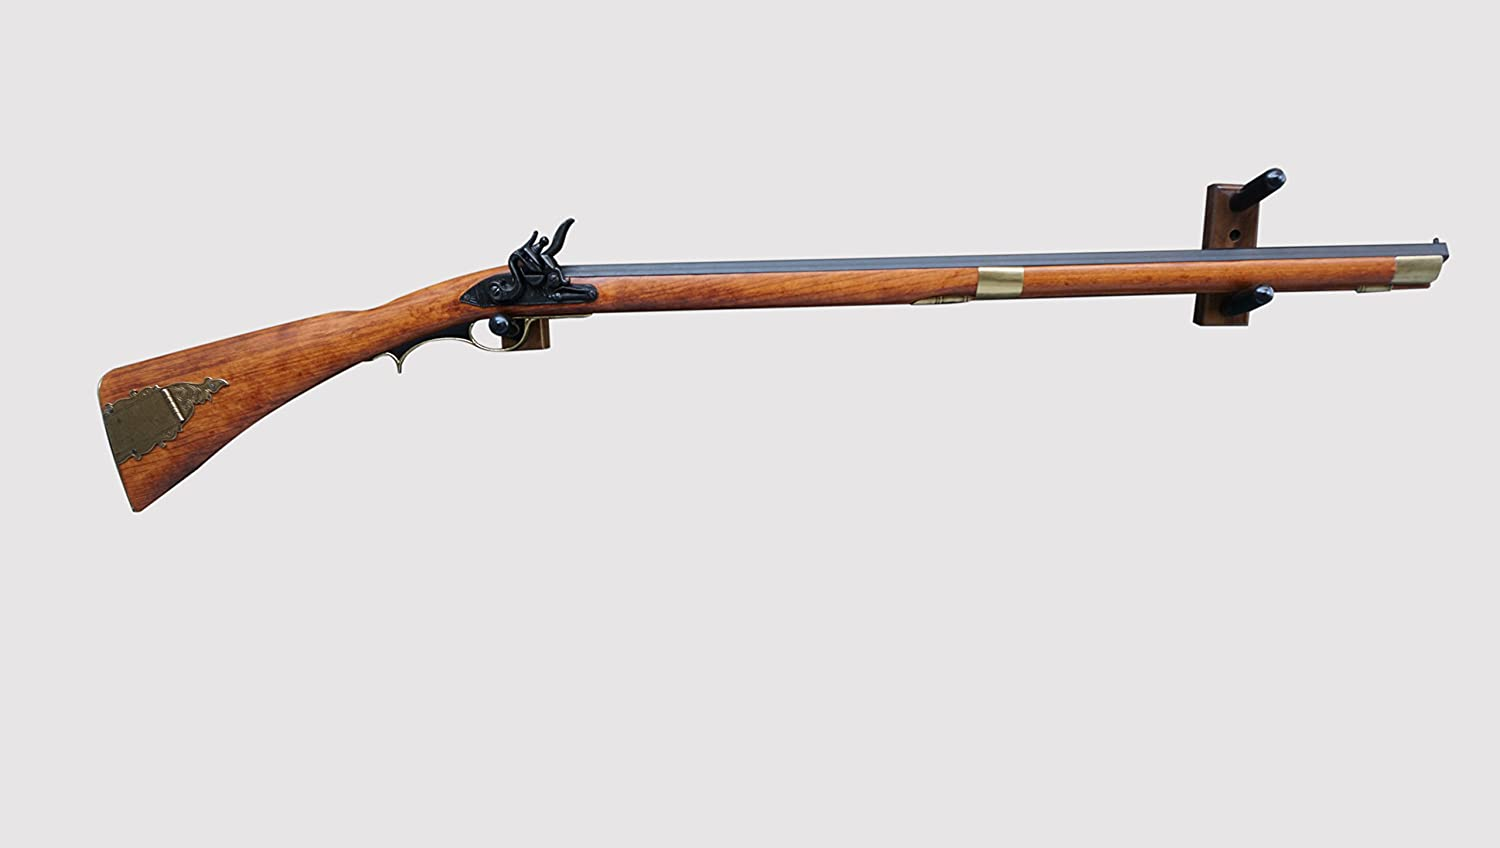 KR Ideas Horizontal Wall Mount for Sales of SALE items from new works a The Rifle Max 60% OFF in Musket Made U